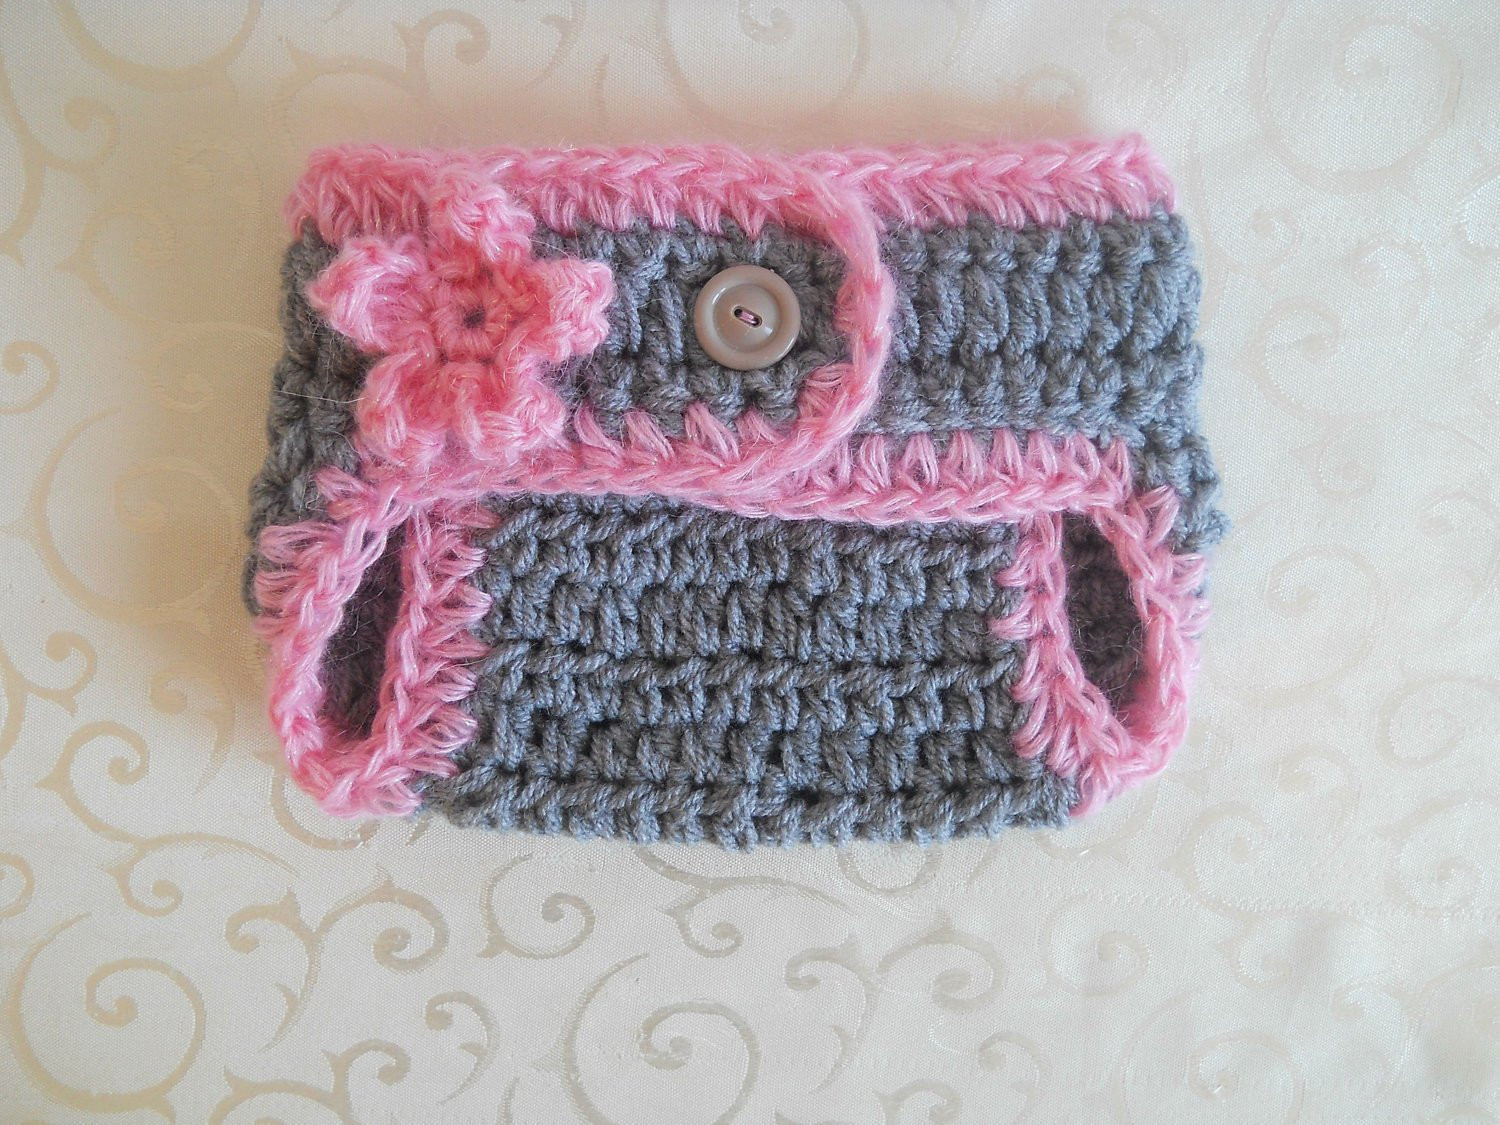 Luxury Crochet Diaper Cover Baby Girl Diaper Cover Newborn Girl Crochet Baby Diaper Cover Of Wonderful 48 Photos Crochet Baby Diaper Cover